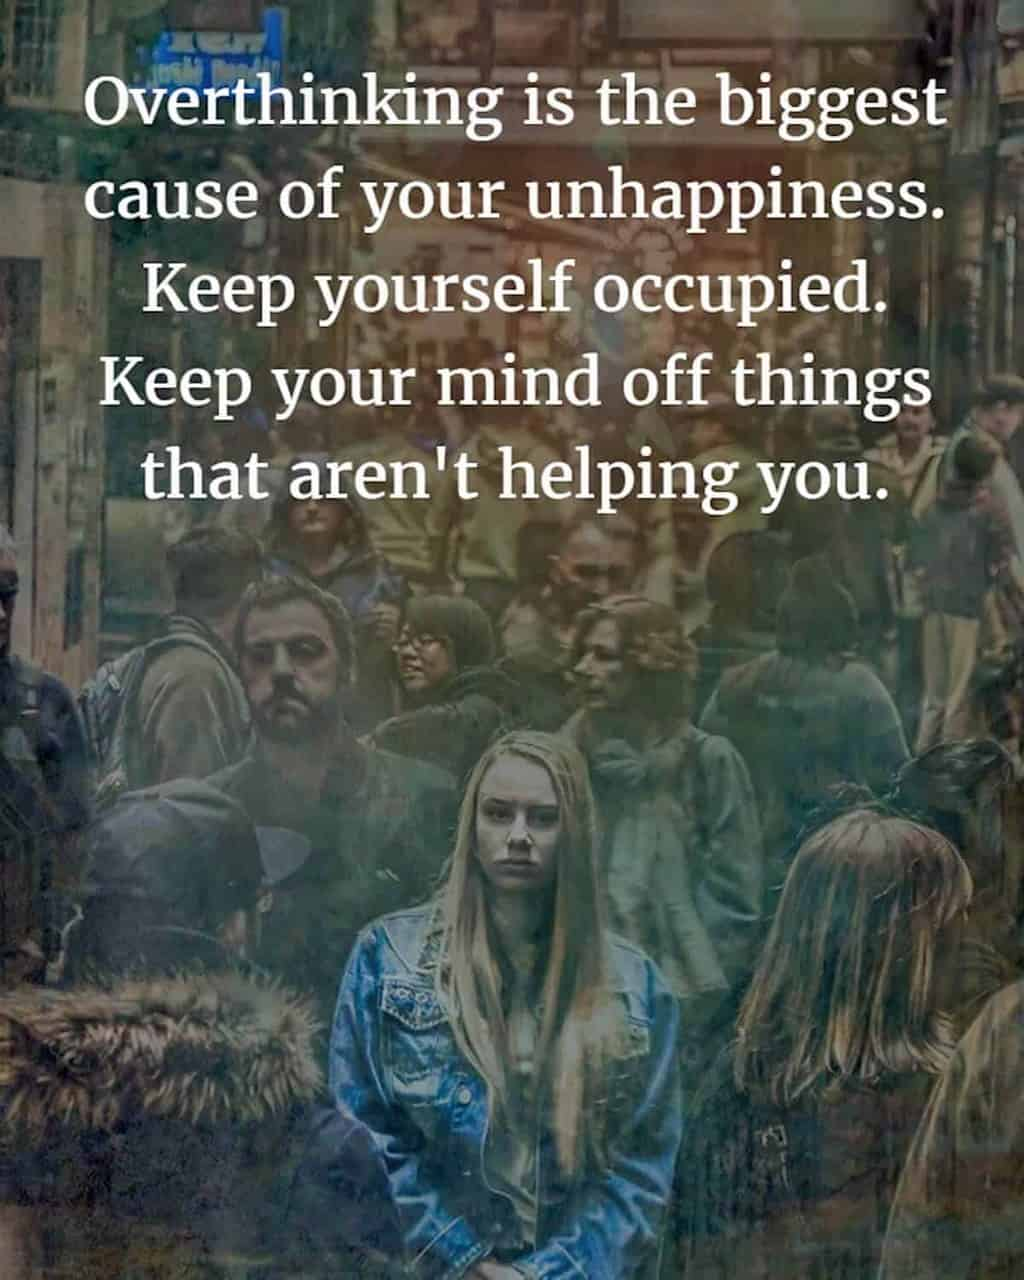 Overthinking-The-Biggest-Reason-of-Unhappiness